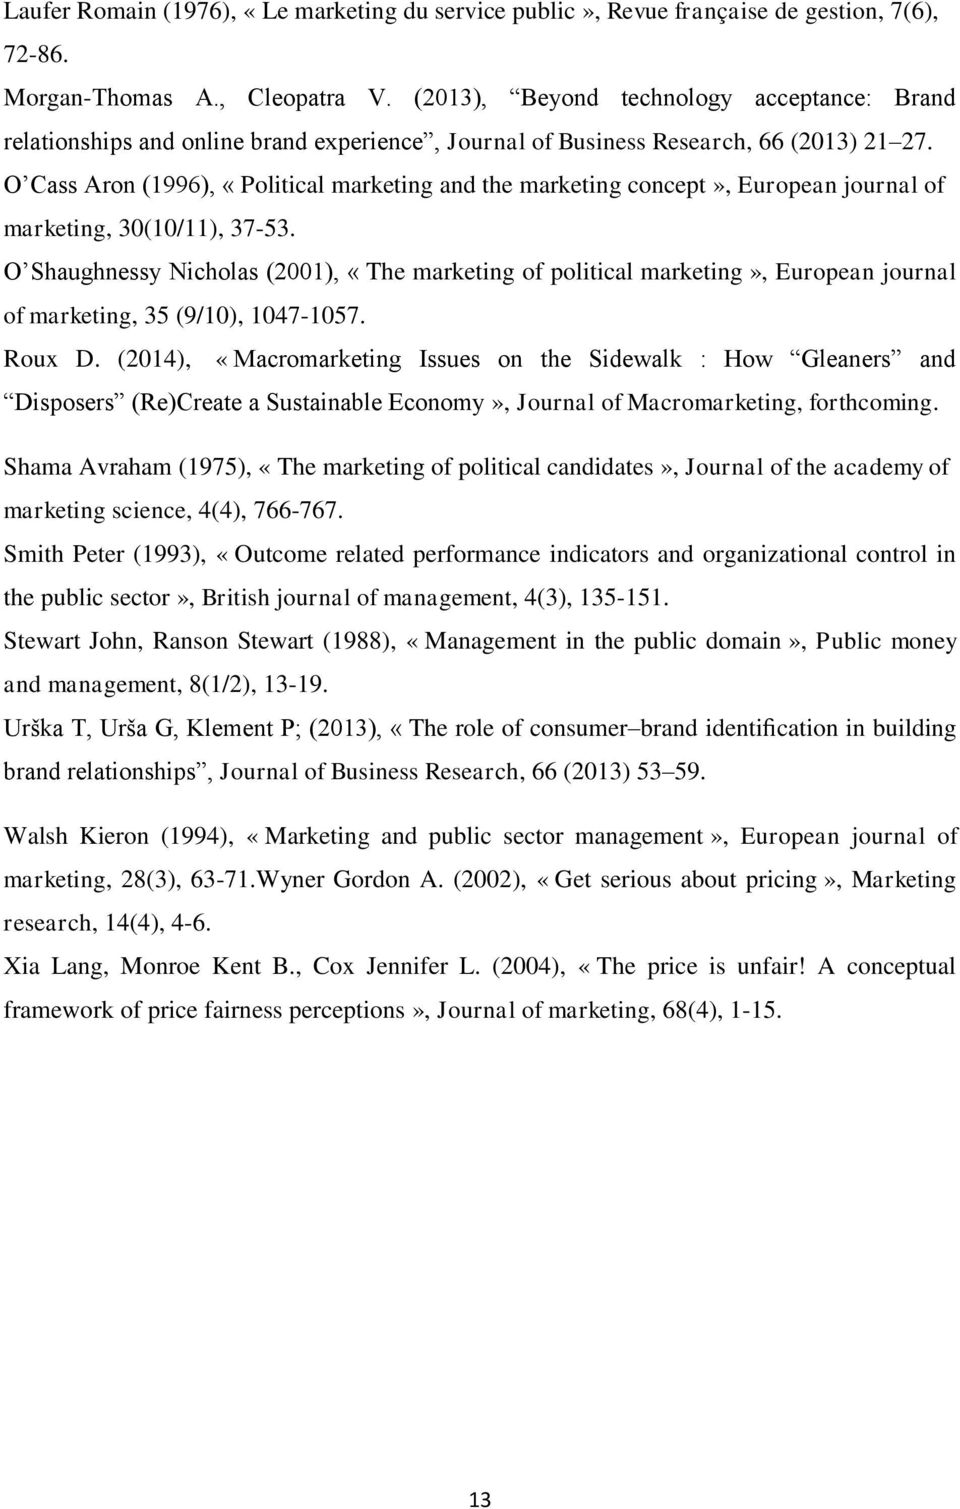 O Cass Aron (1996), «Political marketing and the marketing concept», European journal of marketing, 30(10/11), 37-53.